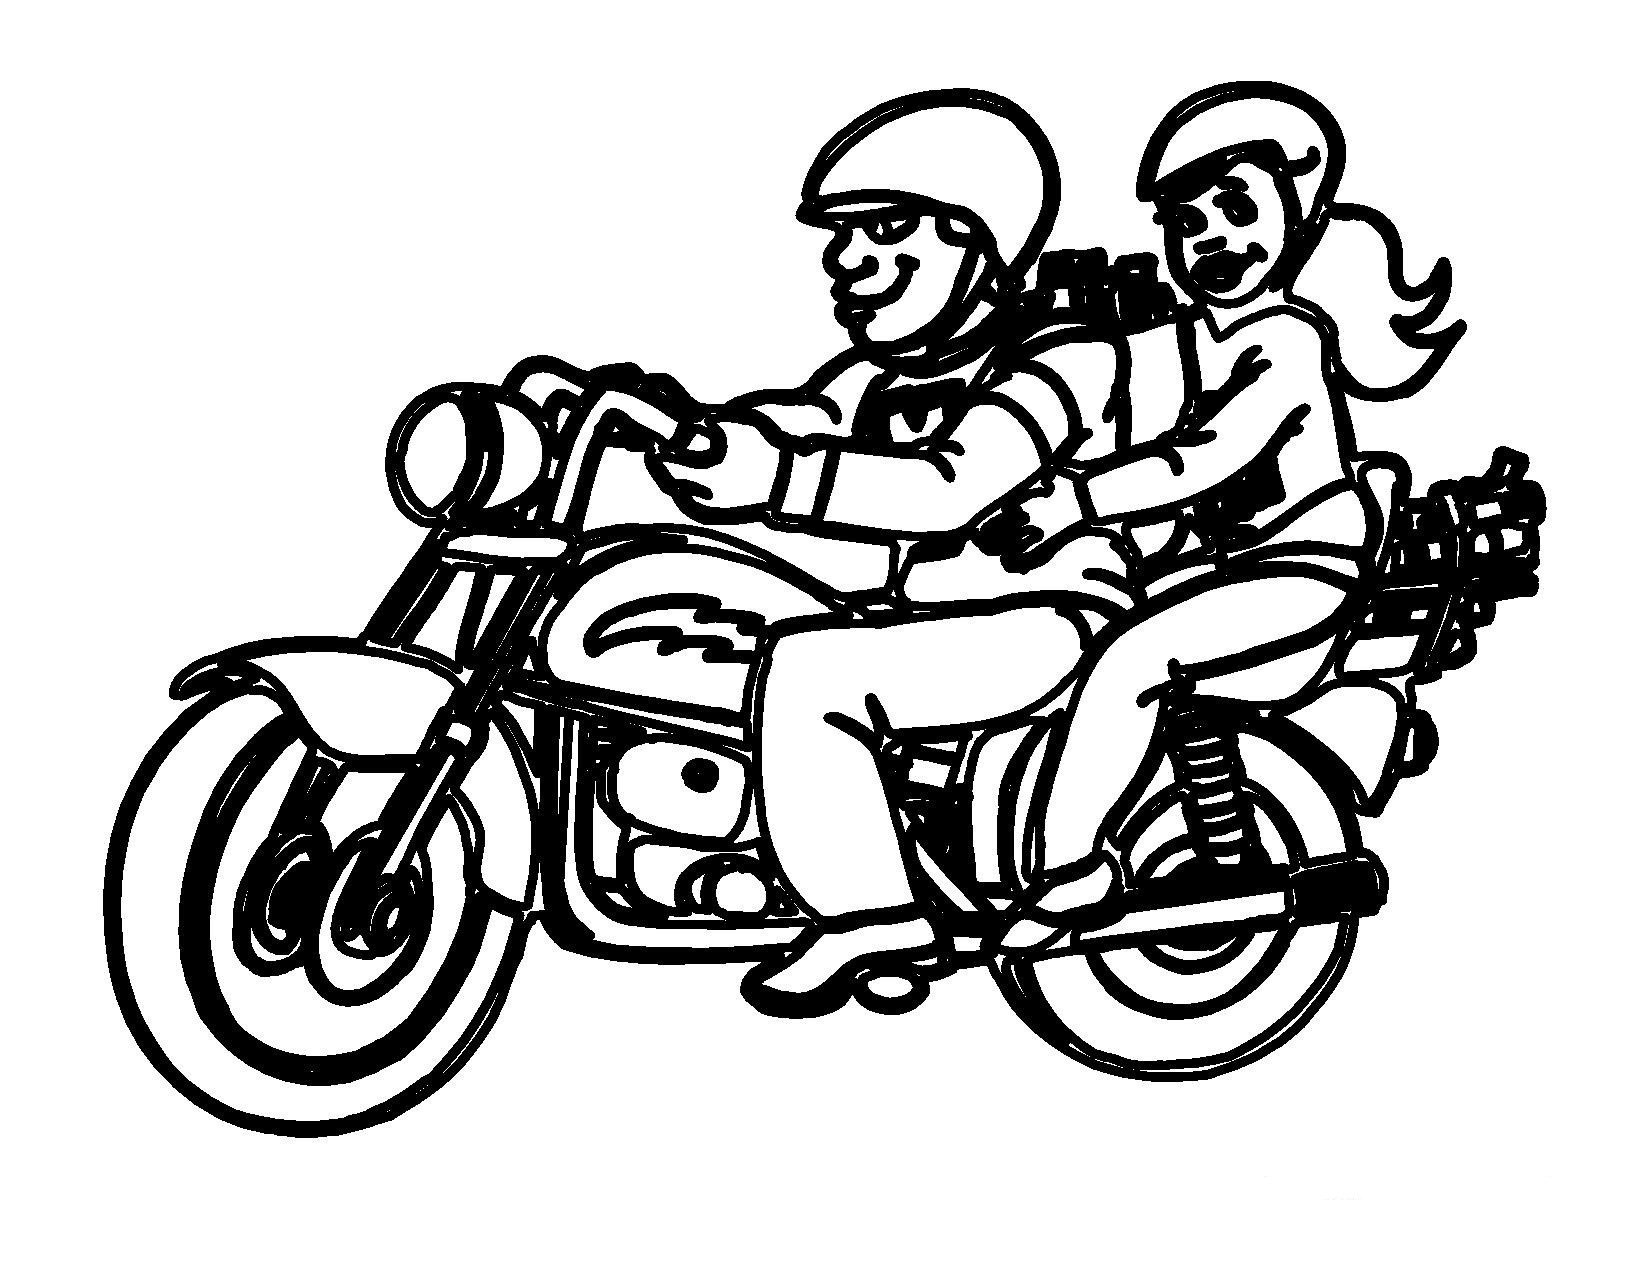 coloring pictures of motorcycles coloring pictures of motorcycles coloring of pictures motorcycles